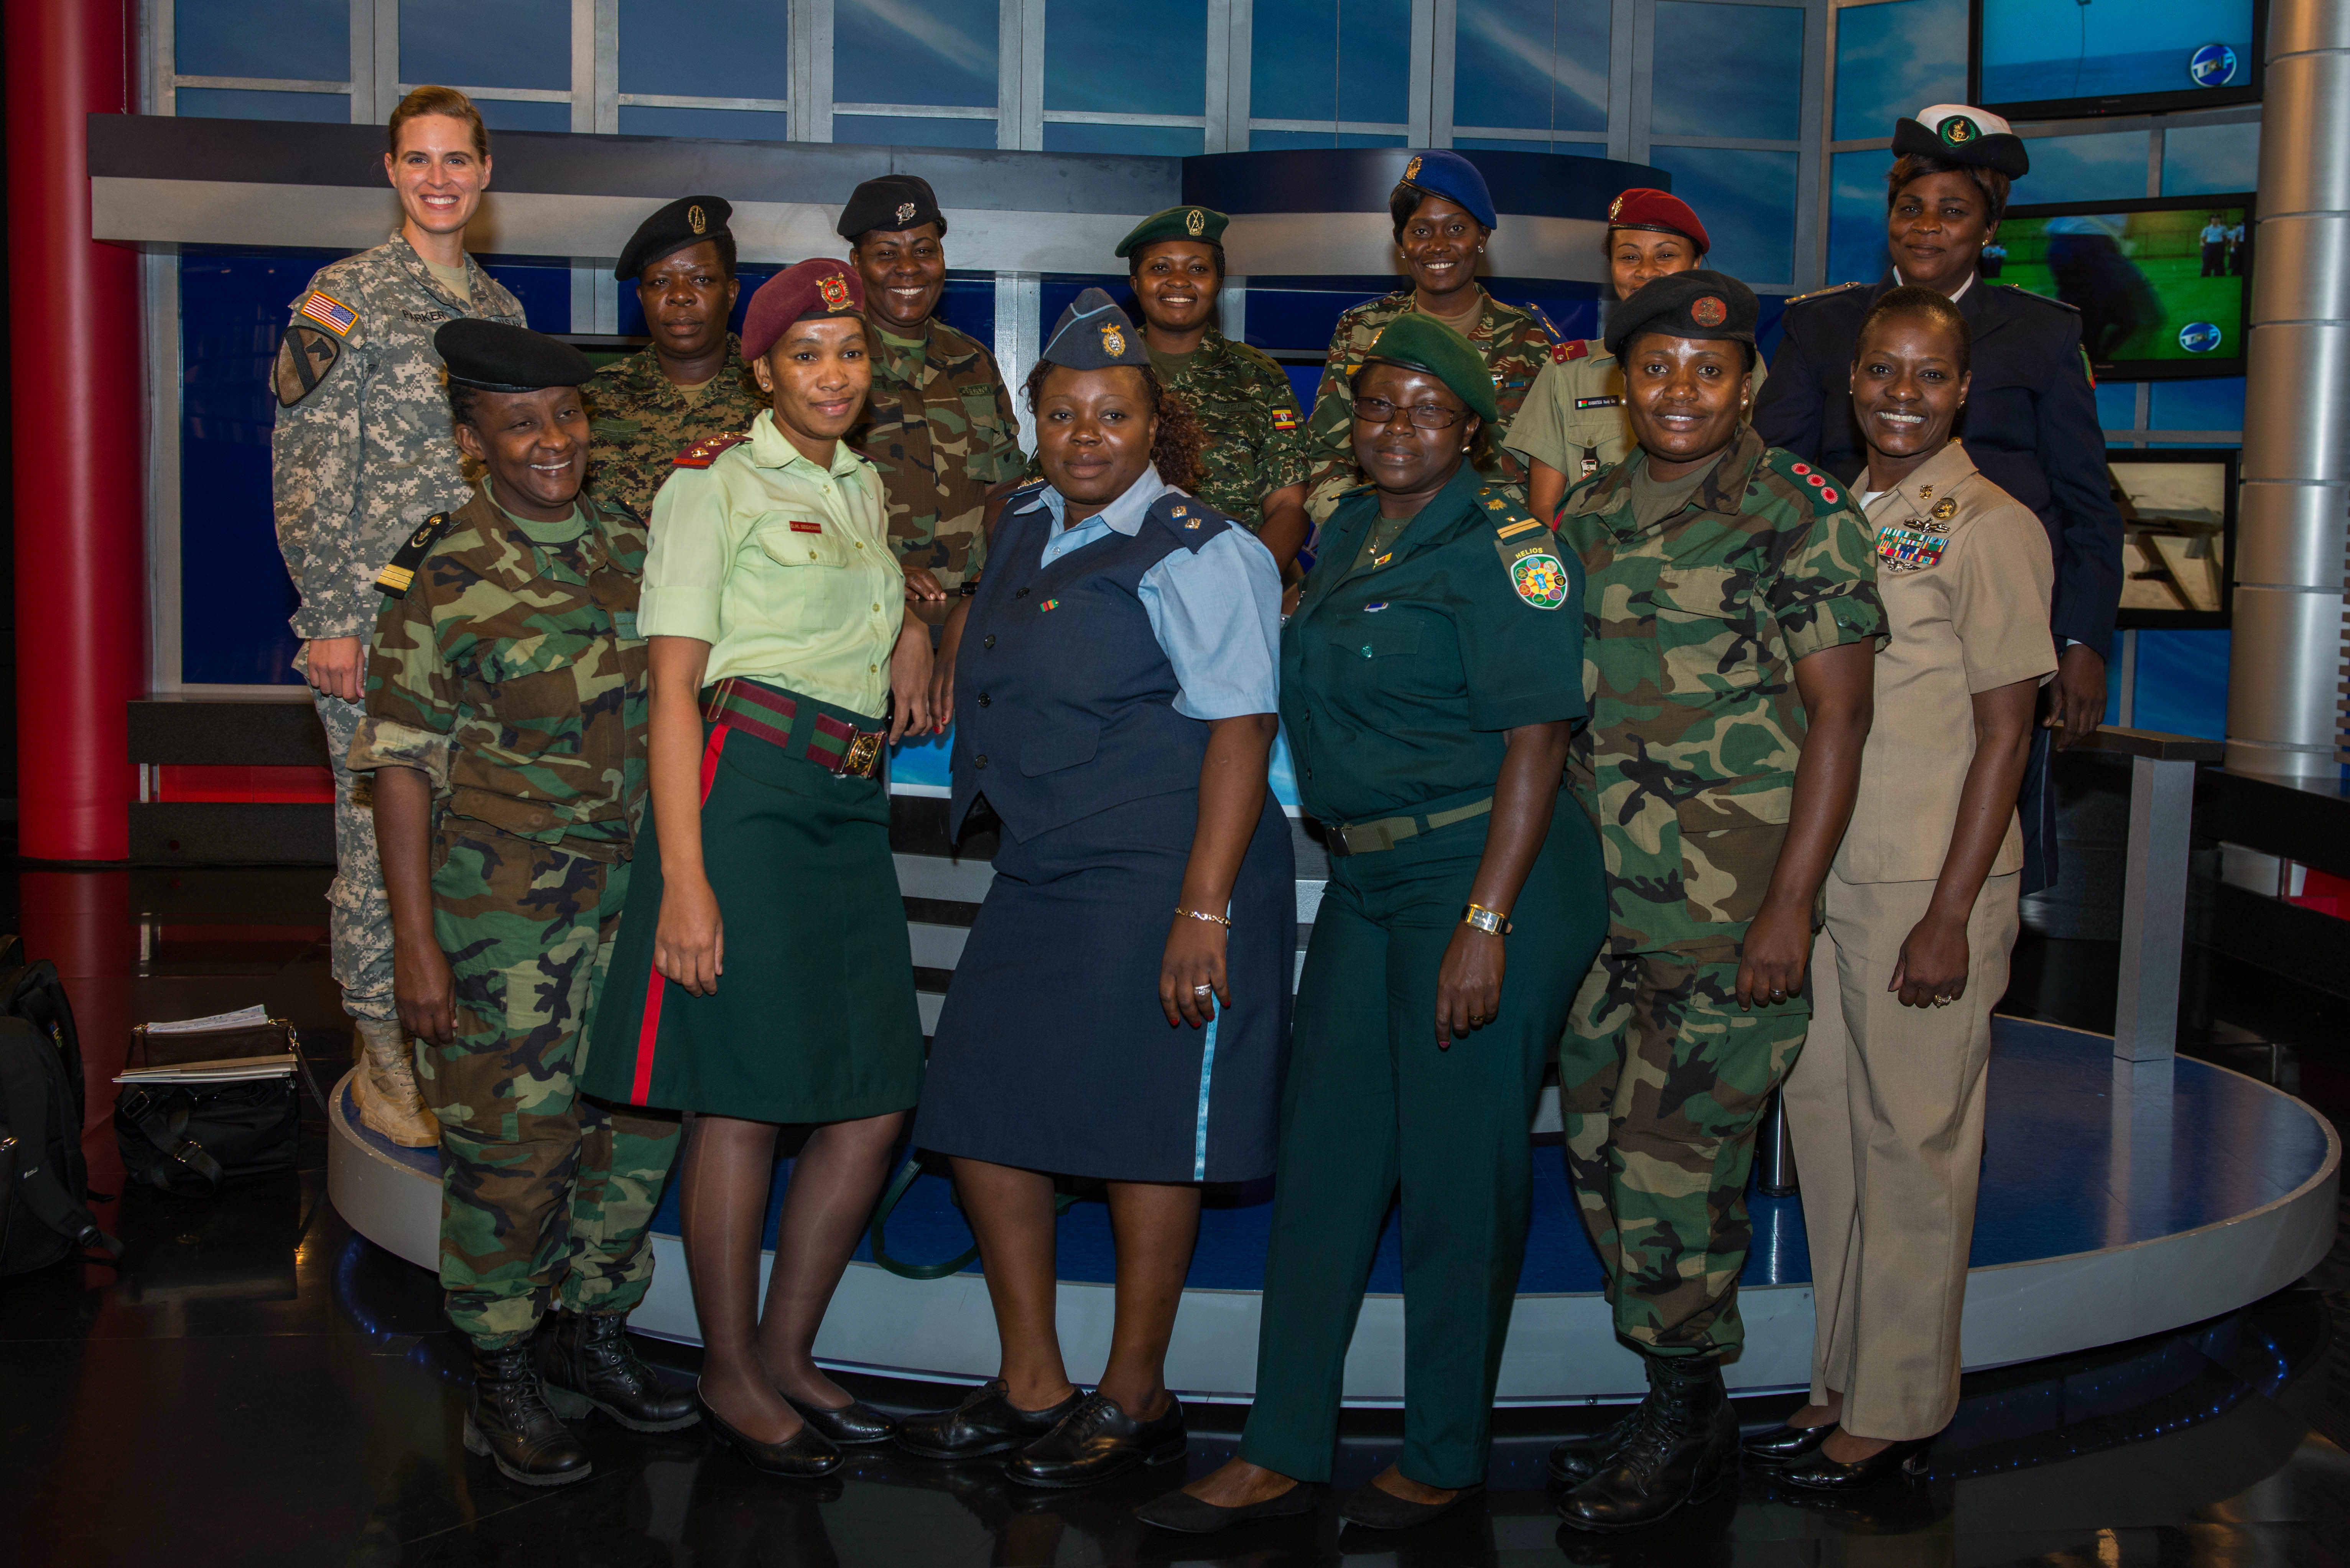 Officers and senior noncommissioned officers from U.S. and African partner nation militaries pose for a picture in Studio 1 at Defense Media Activity, Fort Meade, Maryland, Sept. 23, 2015. The tour was part of the weeklong U.S. Africa Command Women's Communication Forum which supports President Barack Obama's National Action Plan on Women's Peace and Security.